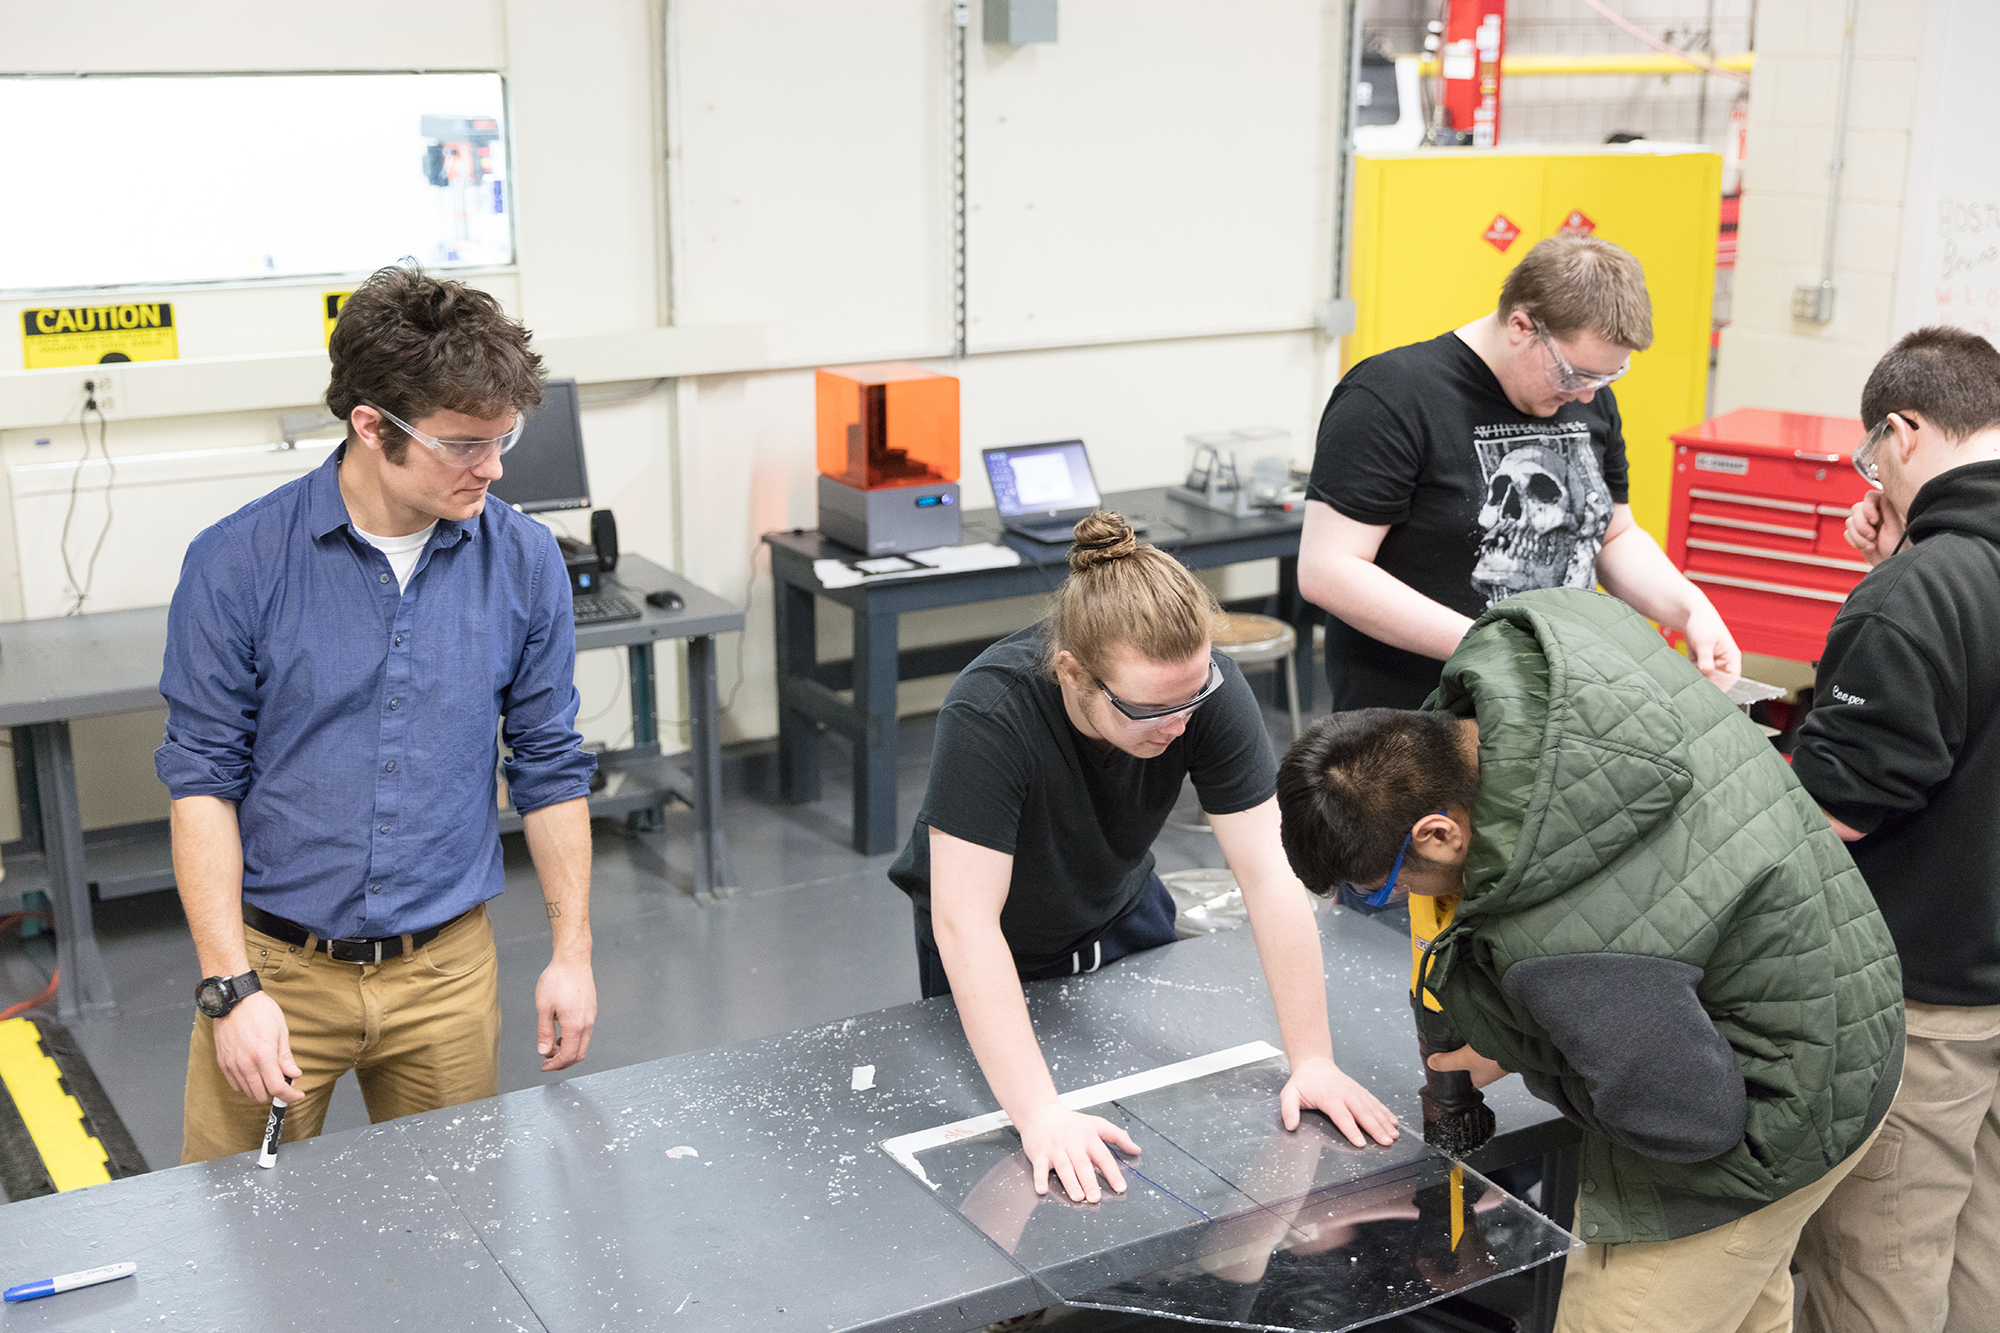 Students work on projects in Somerville High School's fab lab.